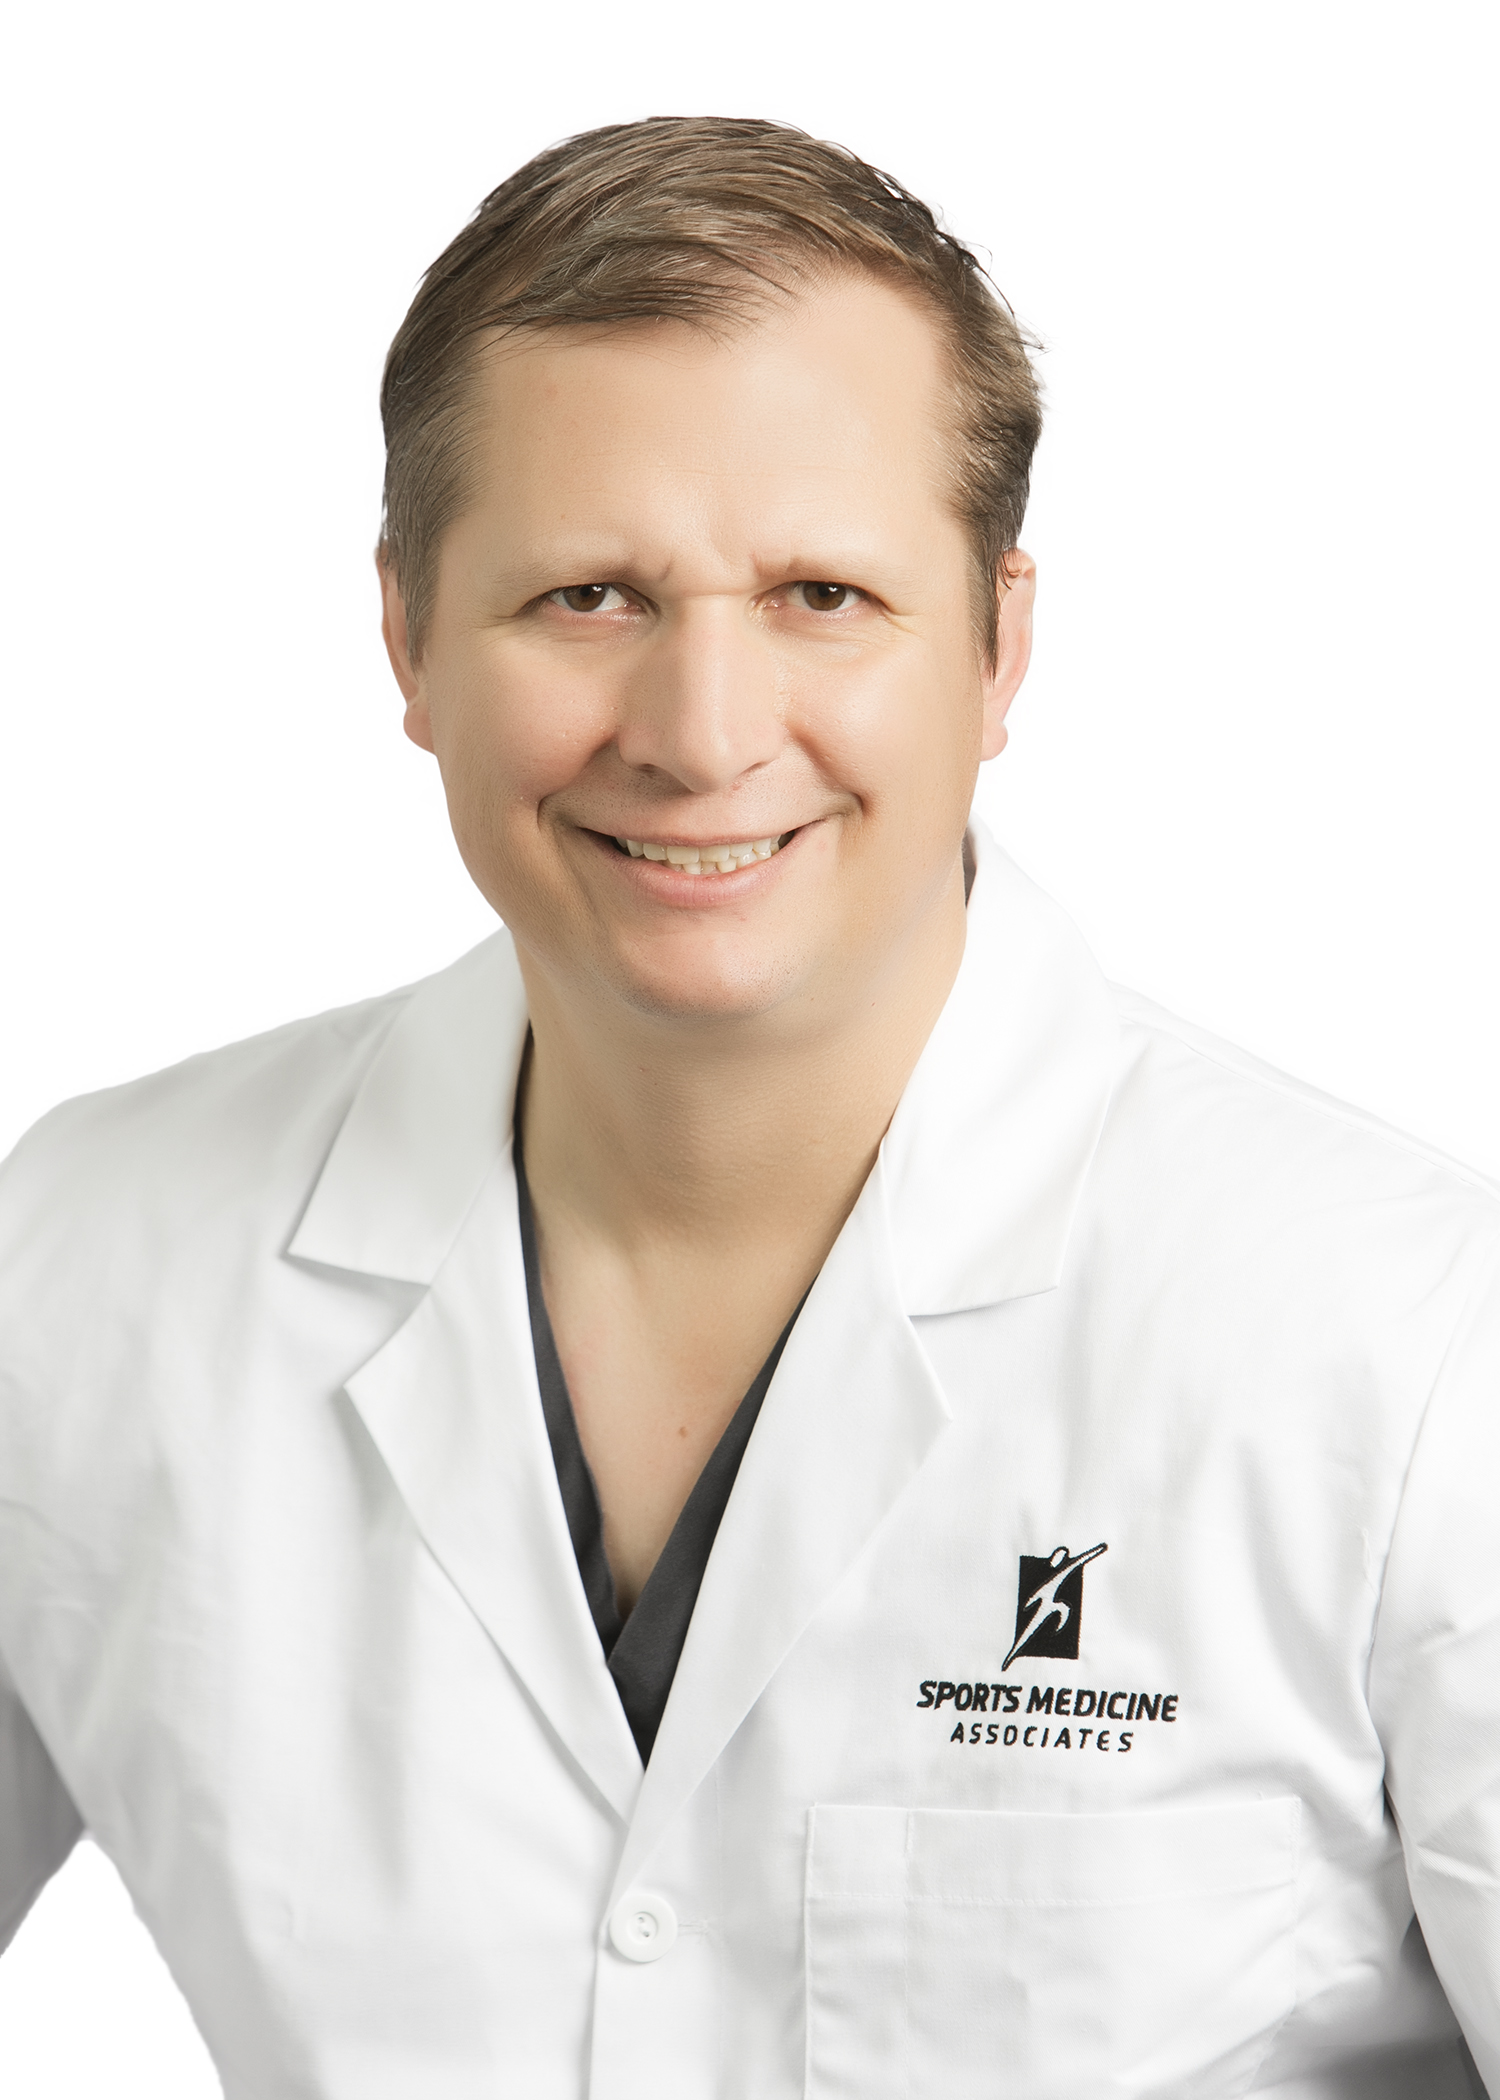 Daniel Santa Maria, M.D. - Physical and Rehab MedicinePrimary Care Sports Medicine